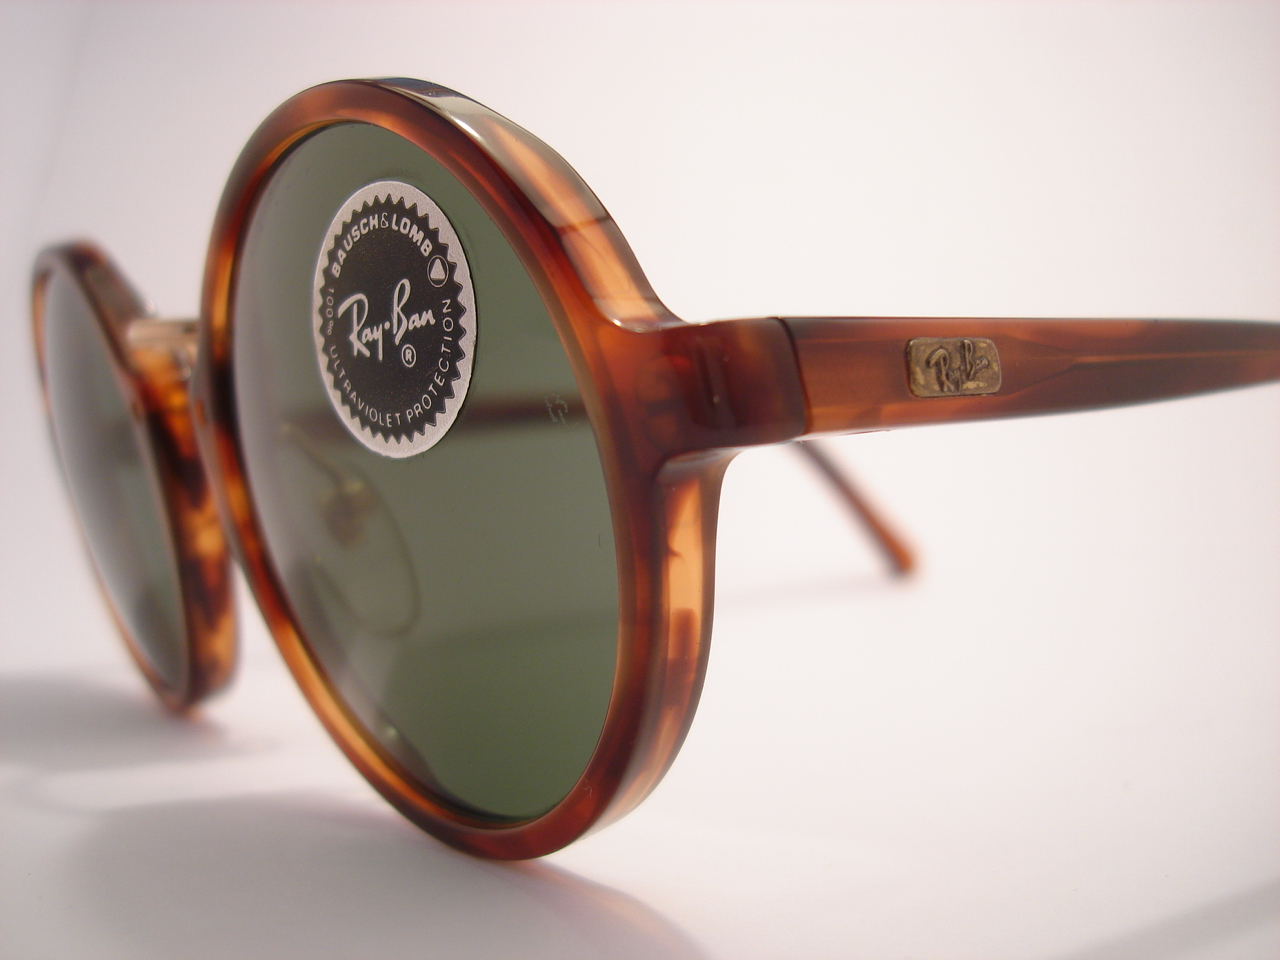 Eyeglass Frames Made In The Usa : theothersideofthepillow: vintage RAY BAN by BAUSCH & LOMB ...